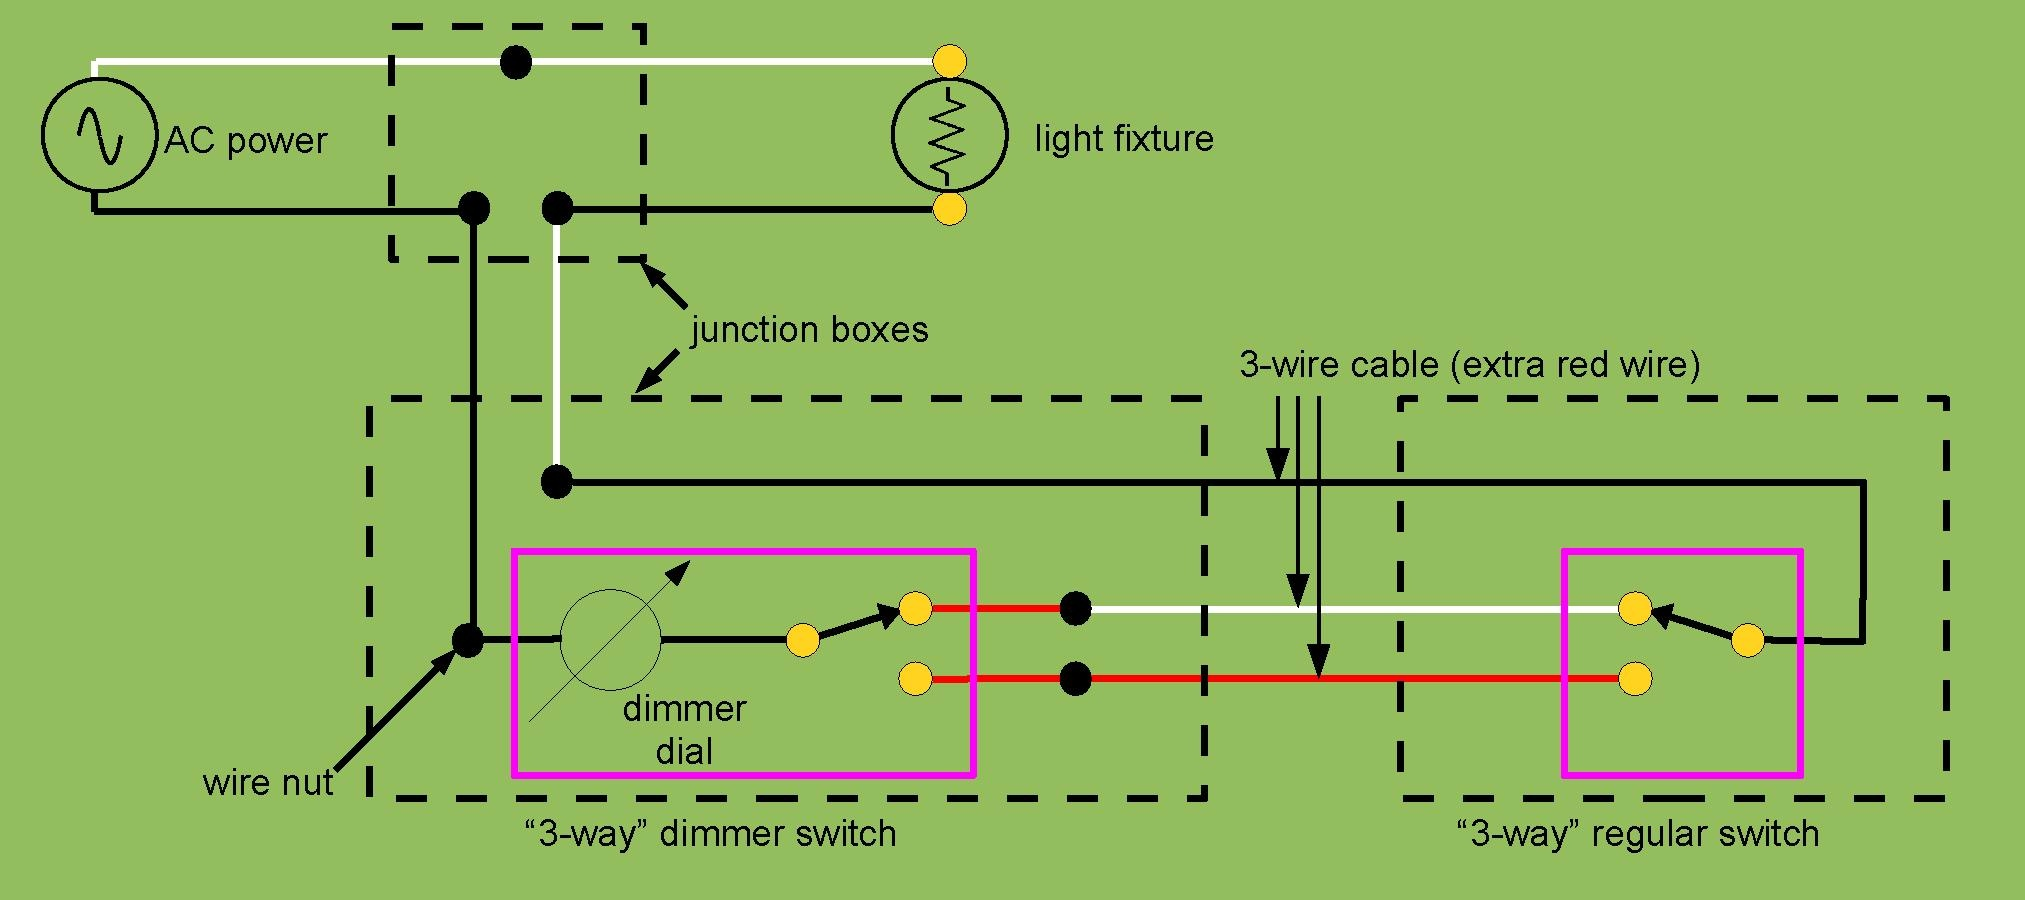 File:3-way dimmer switch wiring.pdf - Wikimedia Commons on 3 way light switch, 3 way dimmer installation, 3 way light wiring diagram, dimmer switch installation diagram, maestro dimmer wiring diagram, 3 way switch wiring methods, 3 way lamp wiring diagram, leviton 4 way switch diagram, touch dimmer wiring diagram, two way light switch diagram, 3 way dimmer switch, dimmer switch wiring diagram, 3 way outlet wiring diagram, 3 way venn diagram, 3 way switch diagram,